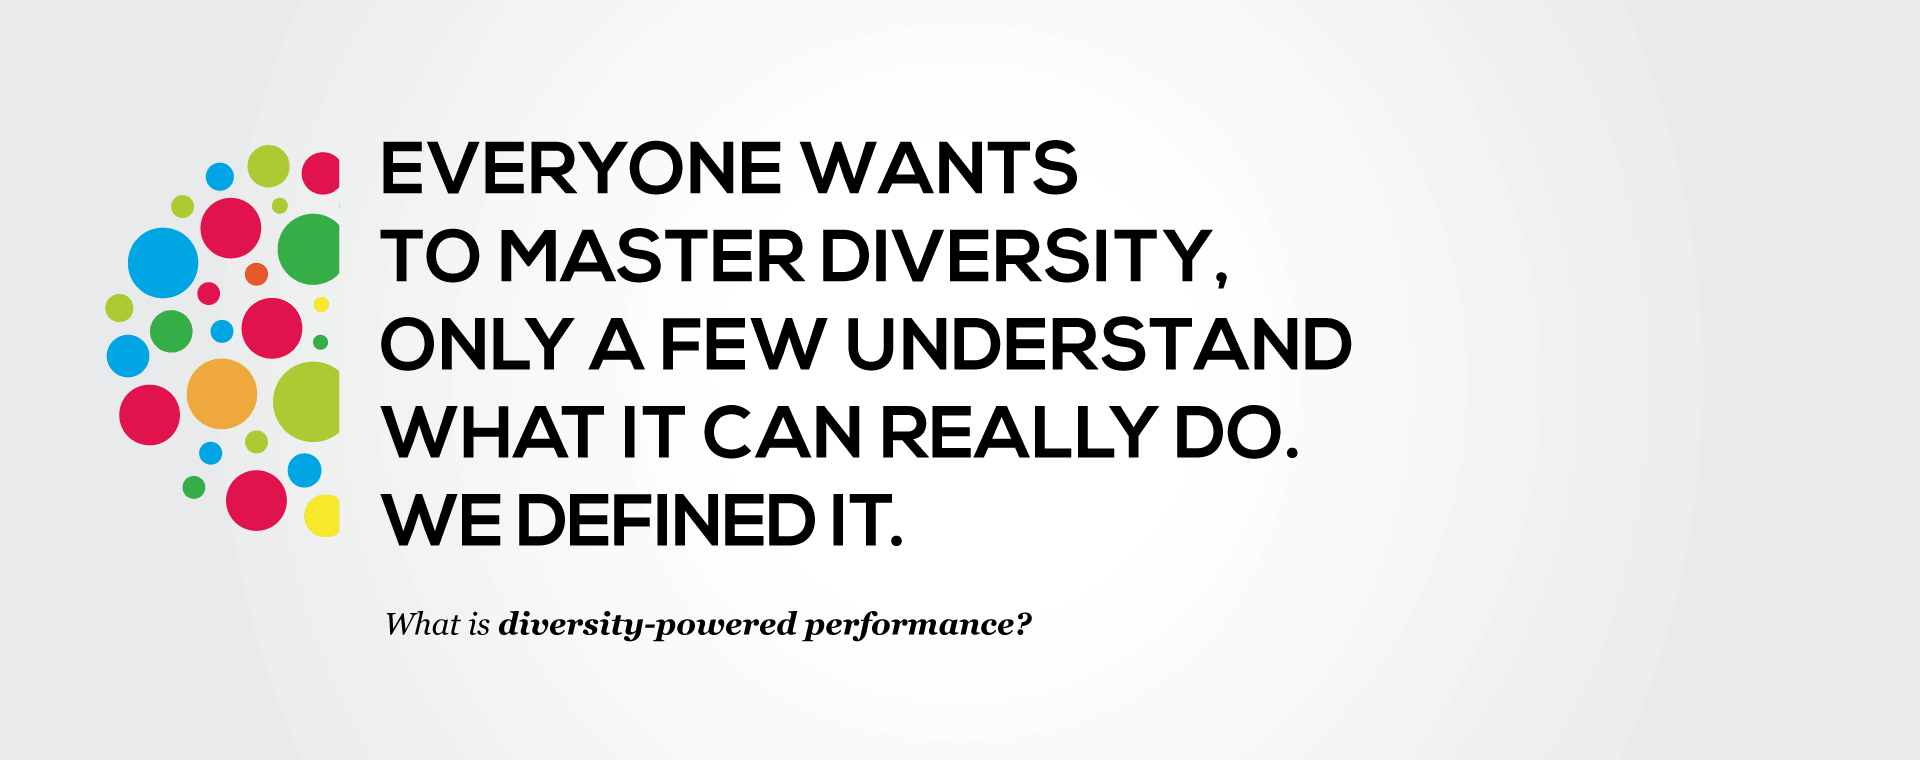 Carousel image 2: Everyone wants to manage diversity, only a few understand what it can really do. We defined it. See our definition of diversity.